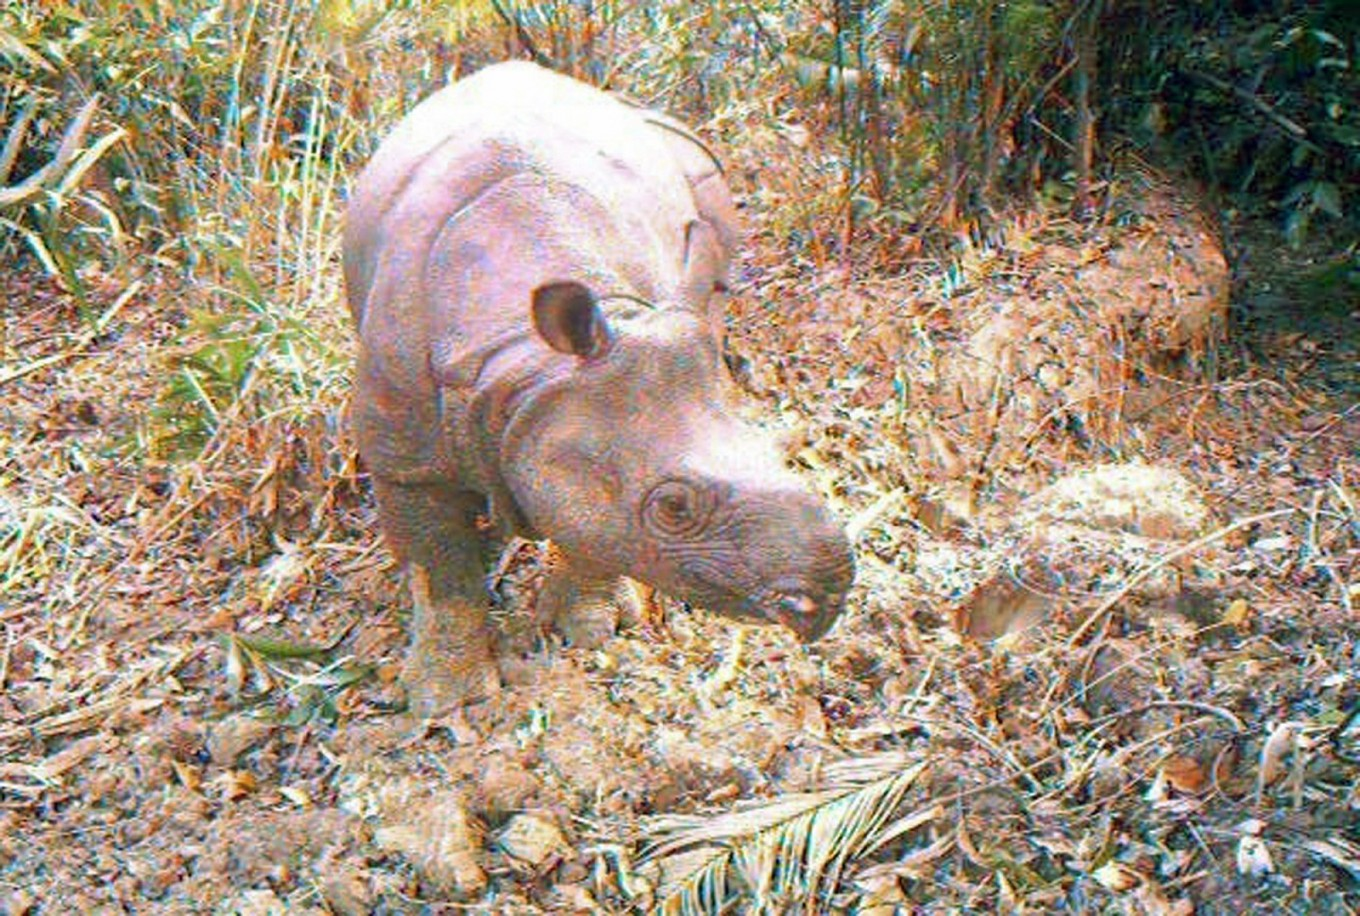 Javan rhino among world's most endangered species